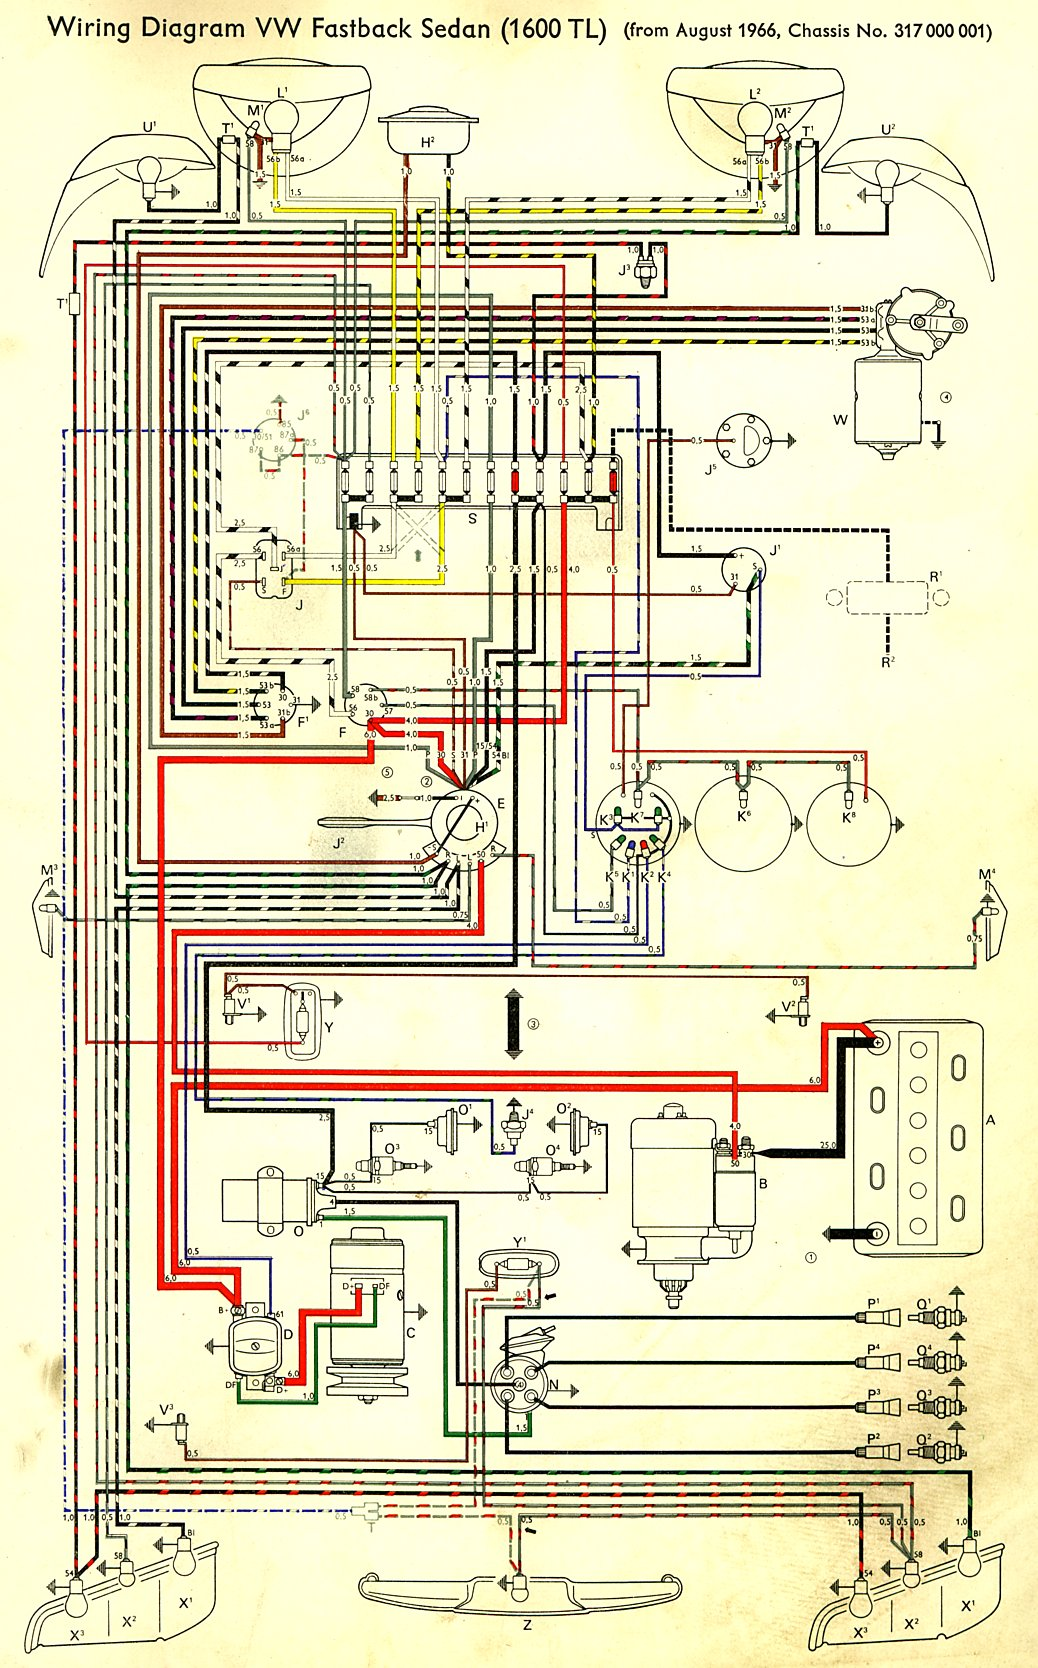 type3_1600TL_67 european wiring diagram hyundai sonata wiring diagram \u2022 free vw wiring diagram symbols at creativeand.co